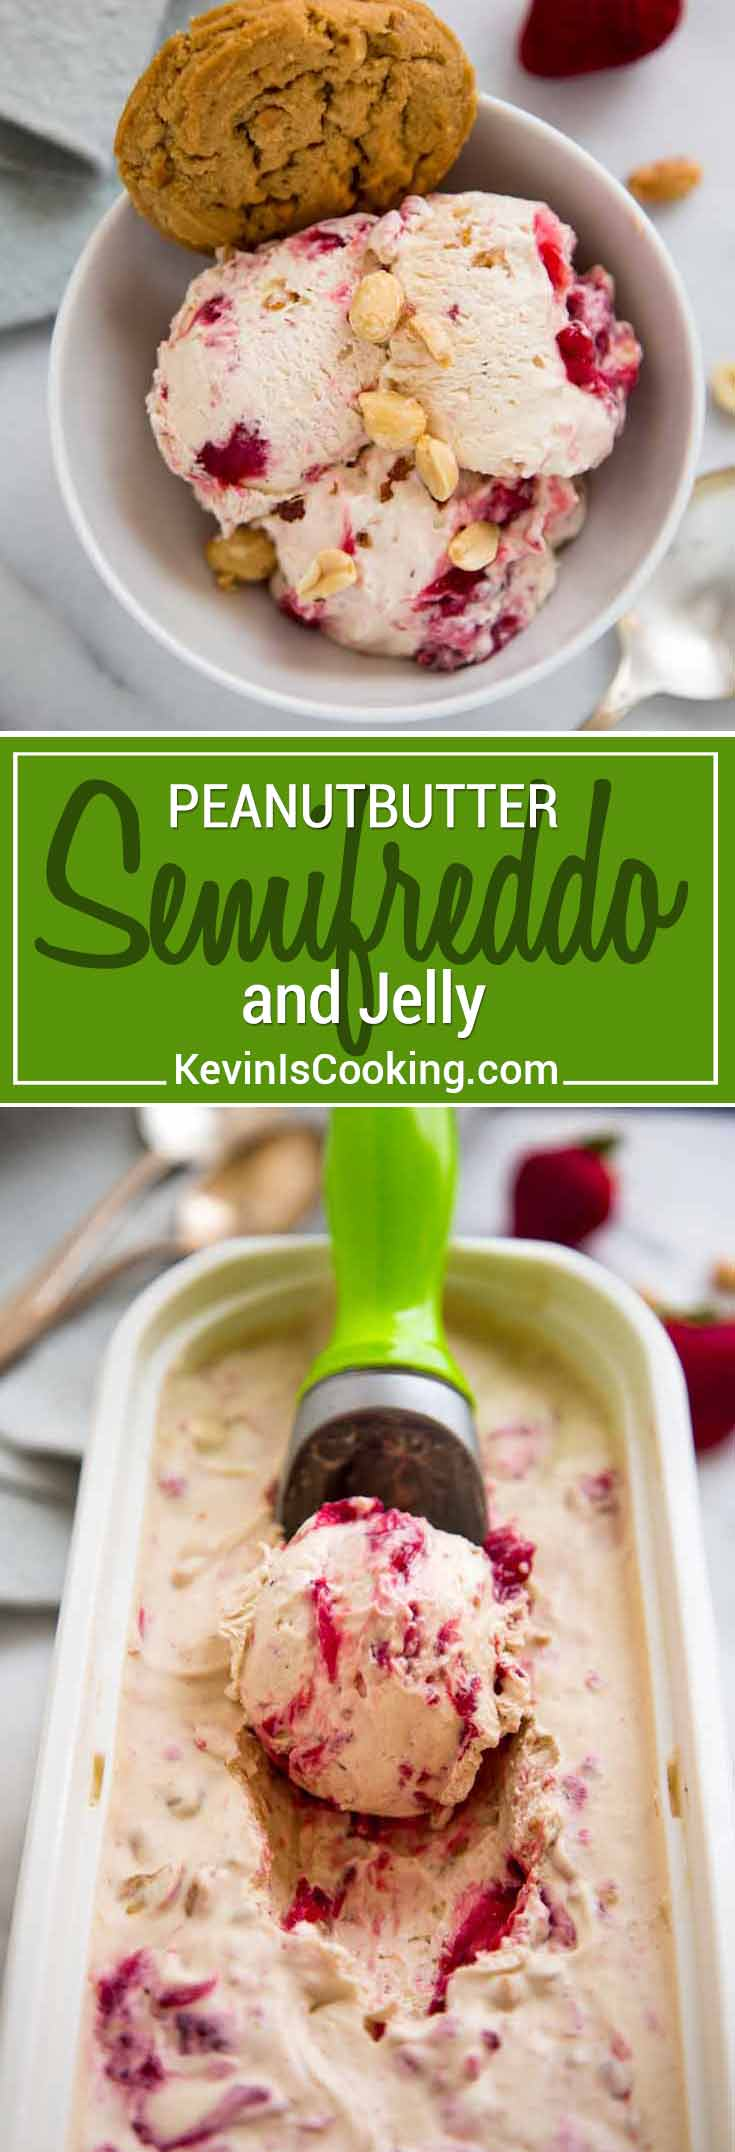 Taking flavors from the American classic sandwich, this Peanut Butter and Jelly Semifreddo is more like a frozen mousse than ice cream, perfect anytime! The kids love it!